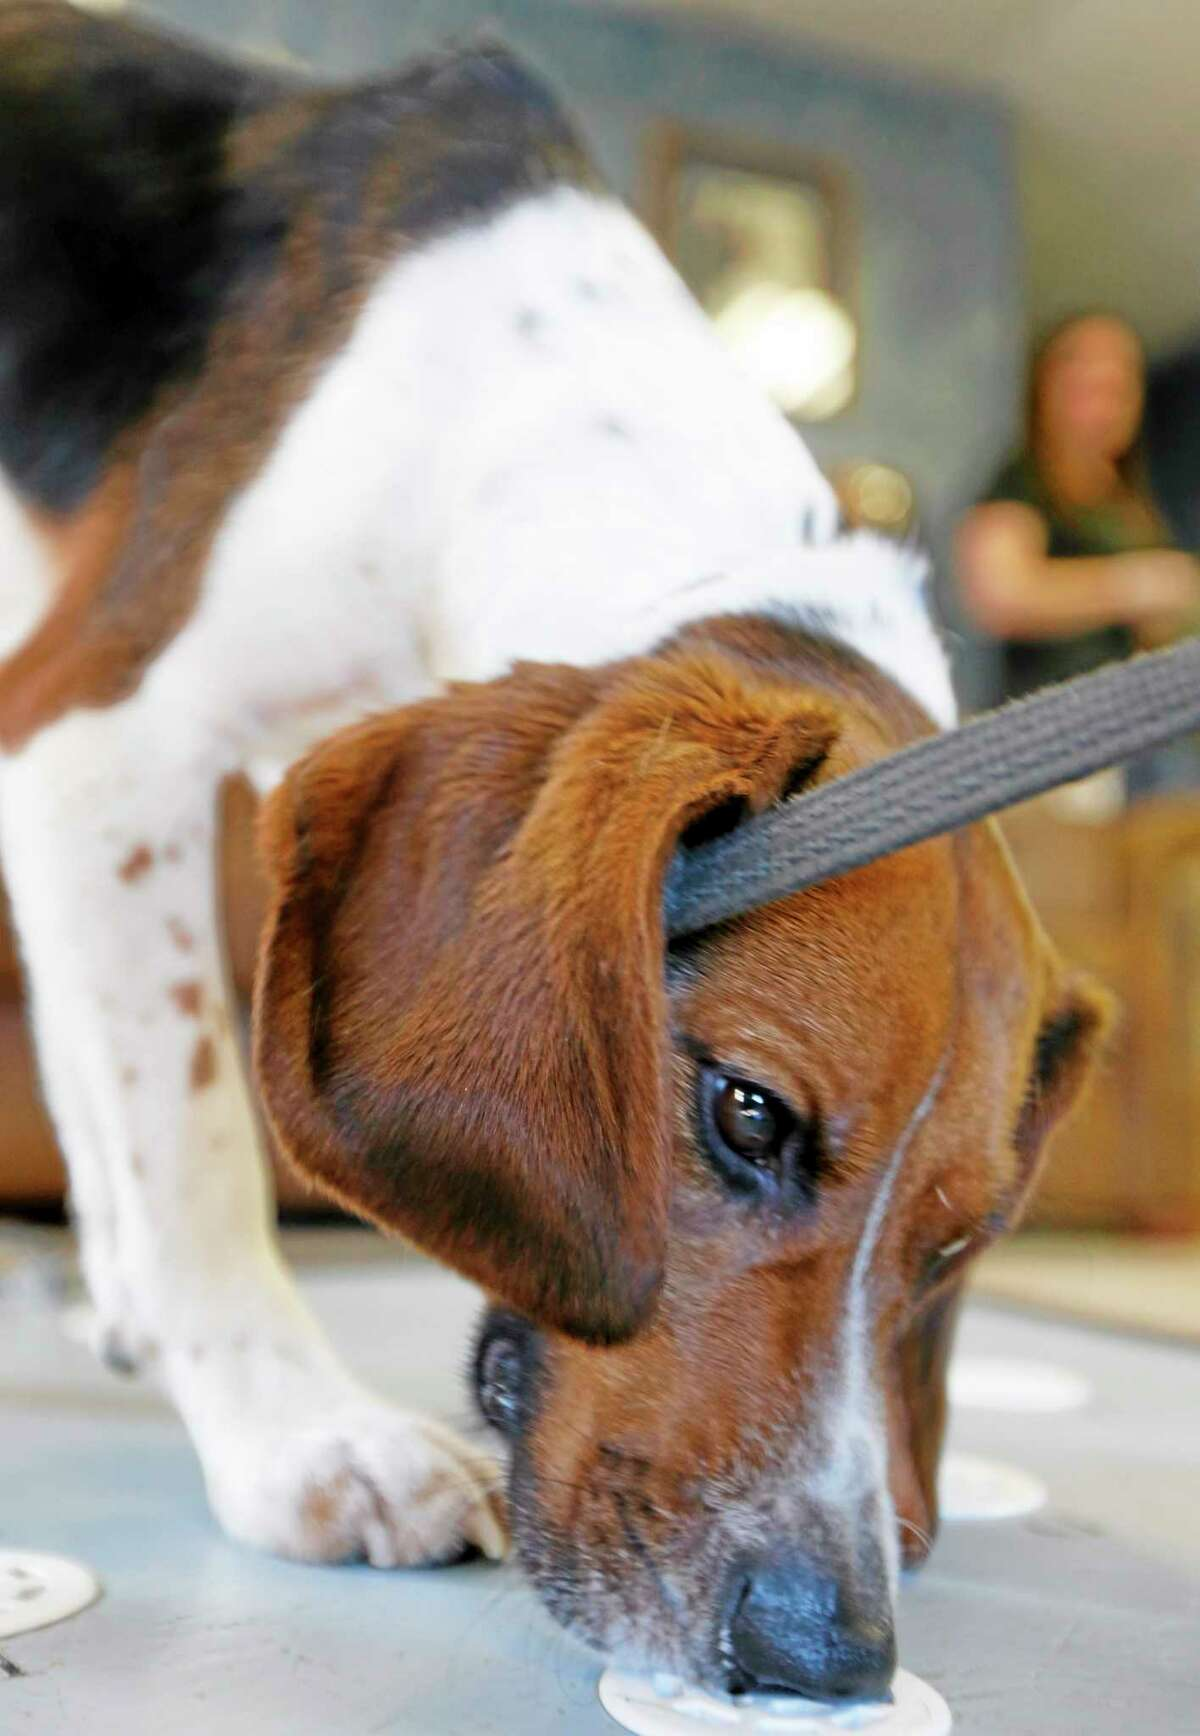 Elvis, a 2-year-old beagle, sniffs polar bear protein samples at Iron Heart Performance Dog Center in Shawnee, Kansas. Elvis is demonstrating 97% accuracy in positive identification of samples from pregnant females. AP Photo/Orlin Wagner